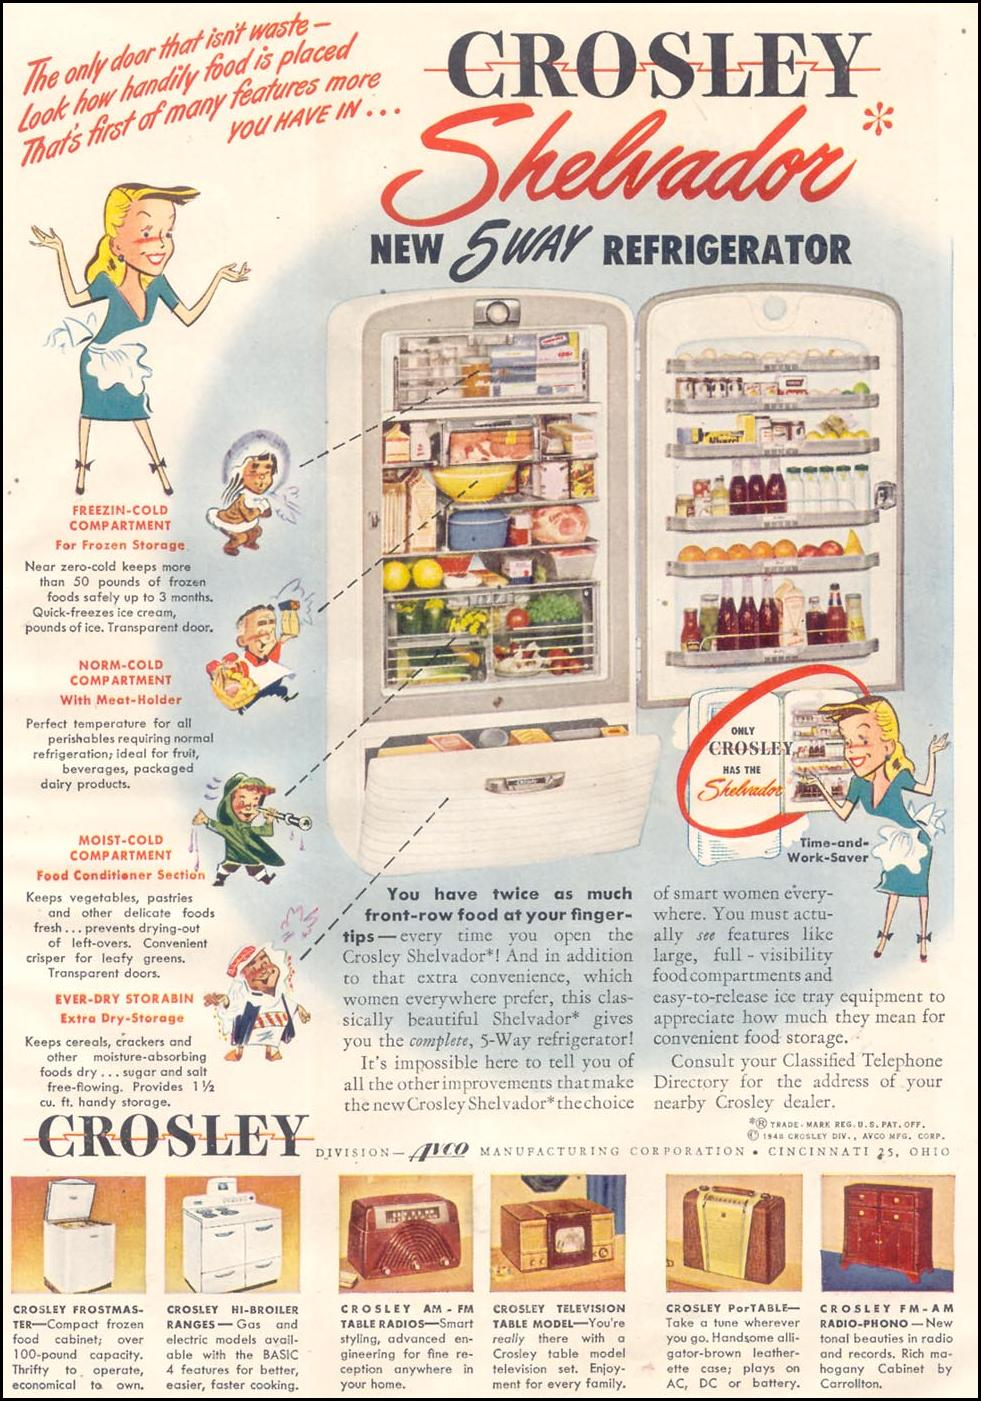 CROSLEY SHELVADOR REFRIGERATOR GOOD HOUSEKEEPING 07/01/1948